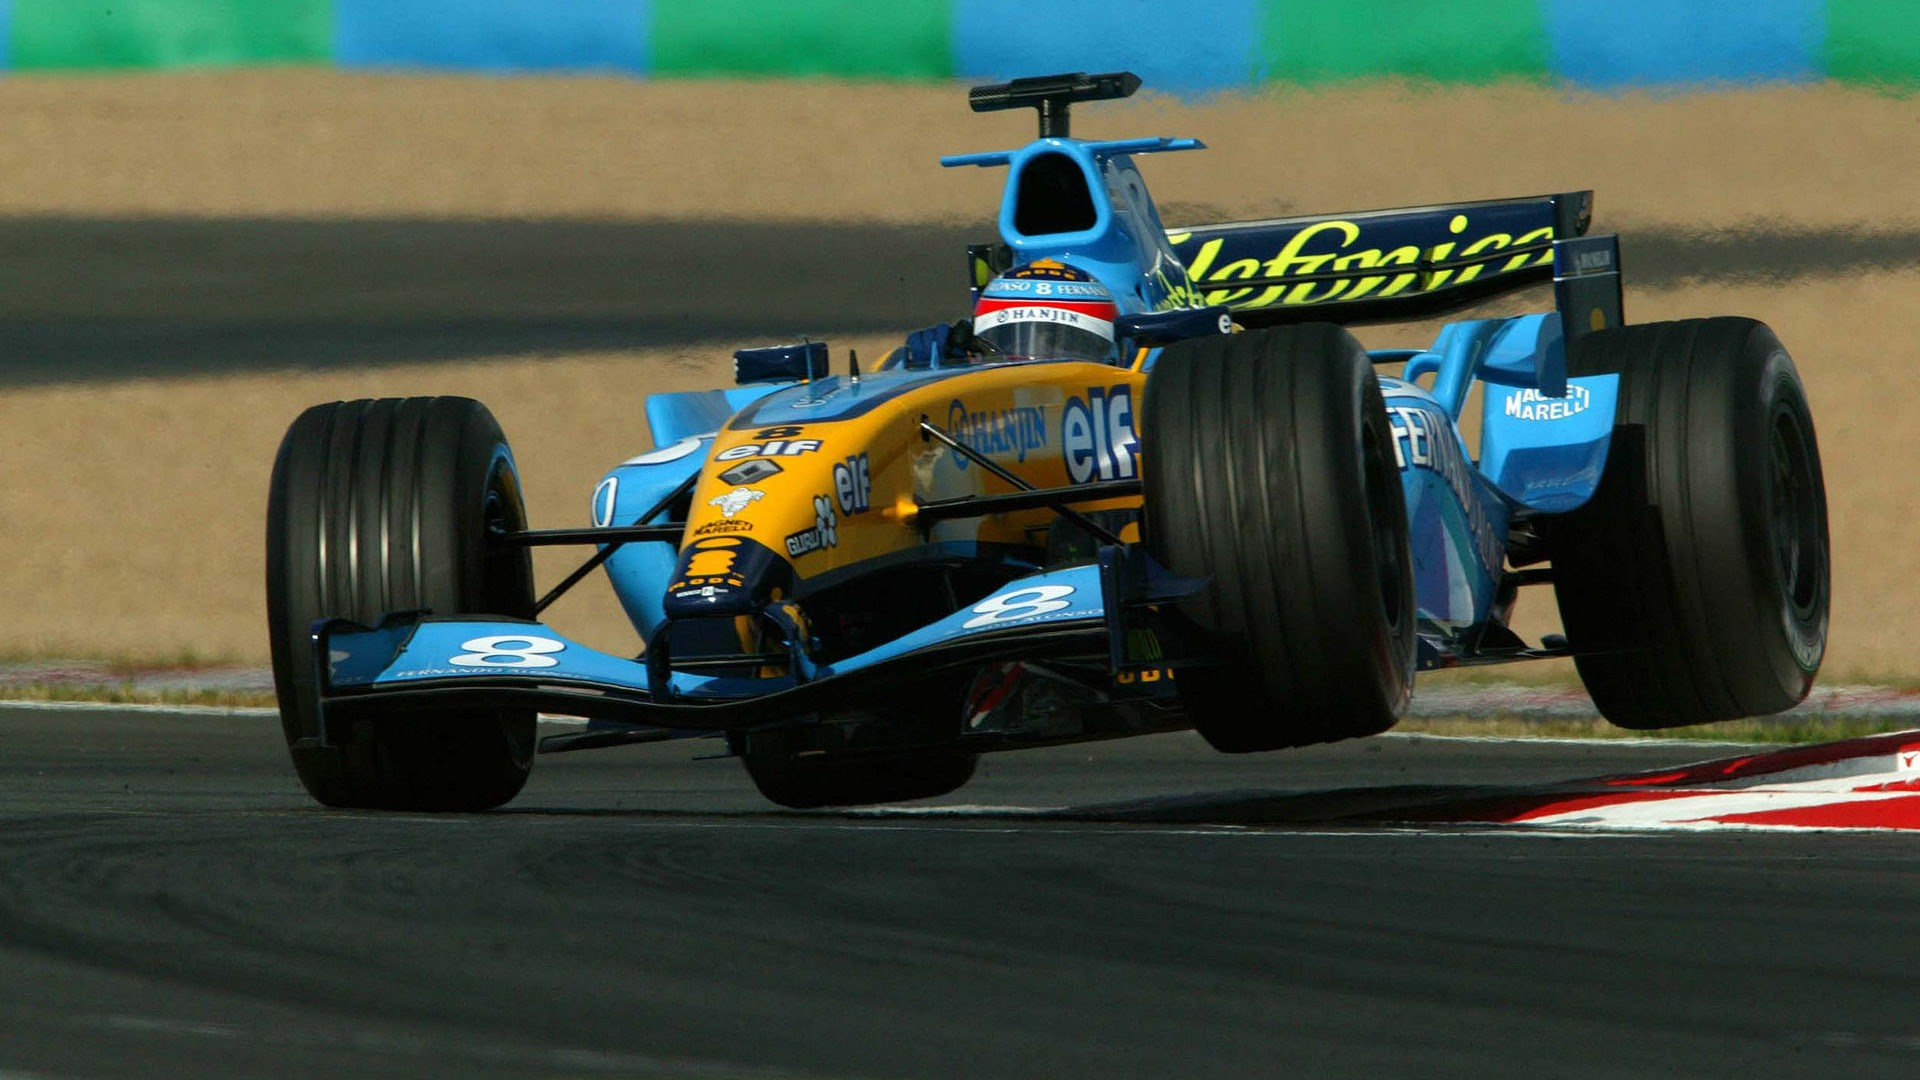 2004 Renault R24 driven by Fernando Alonso,